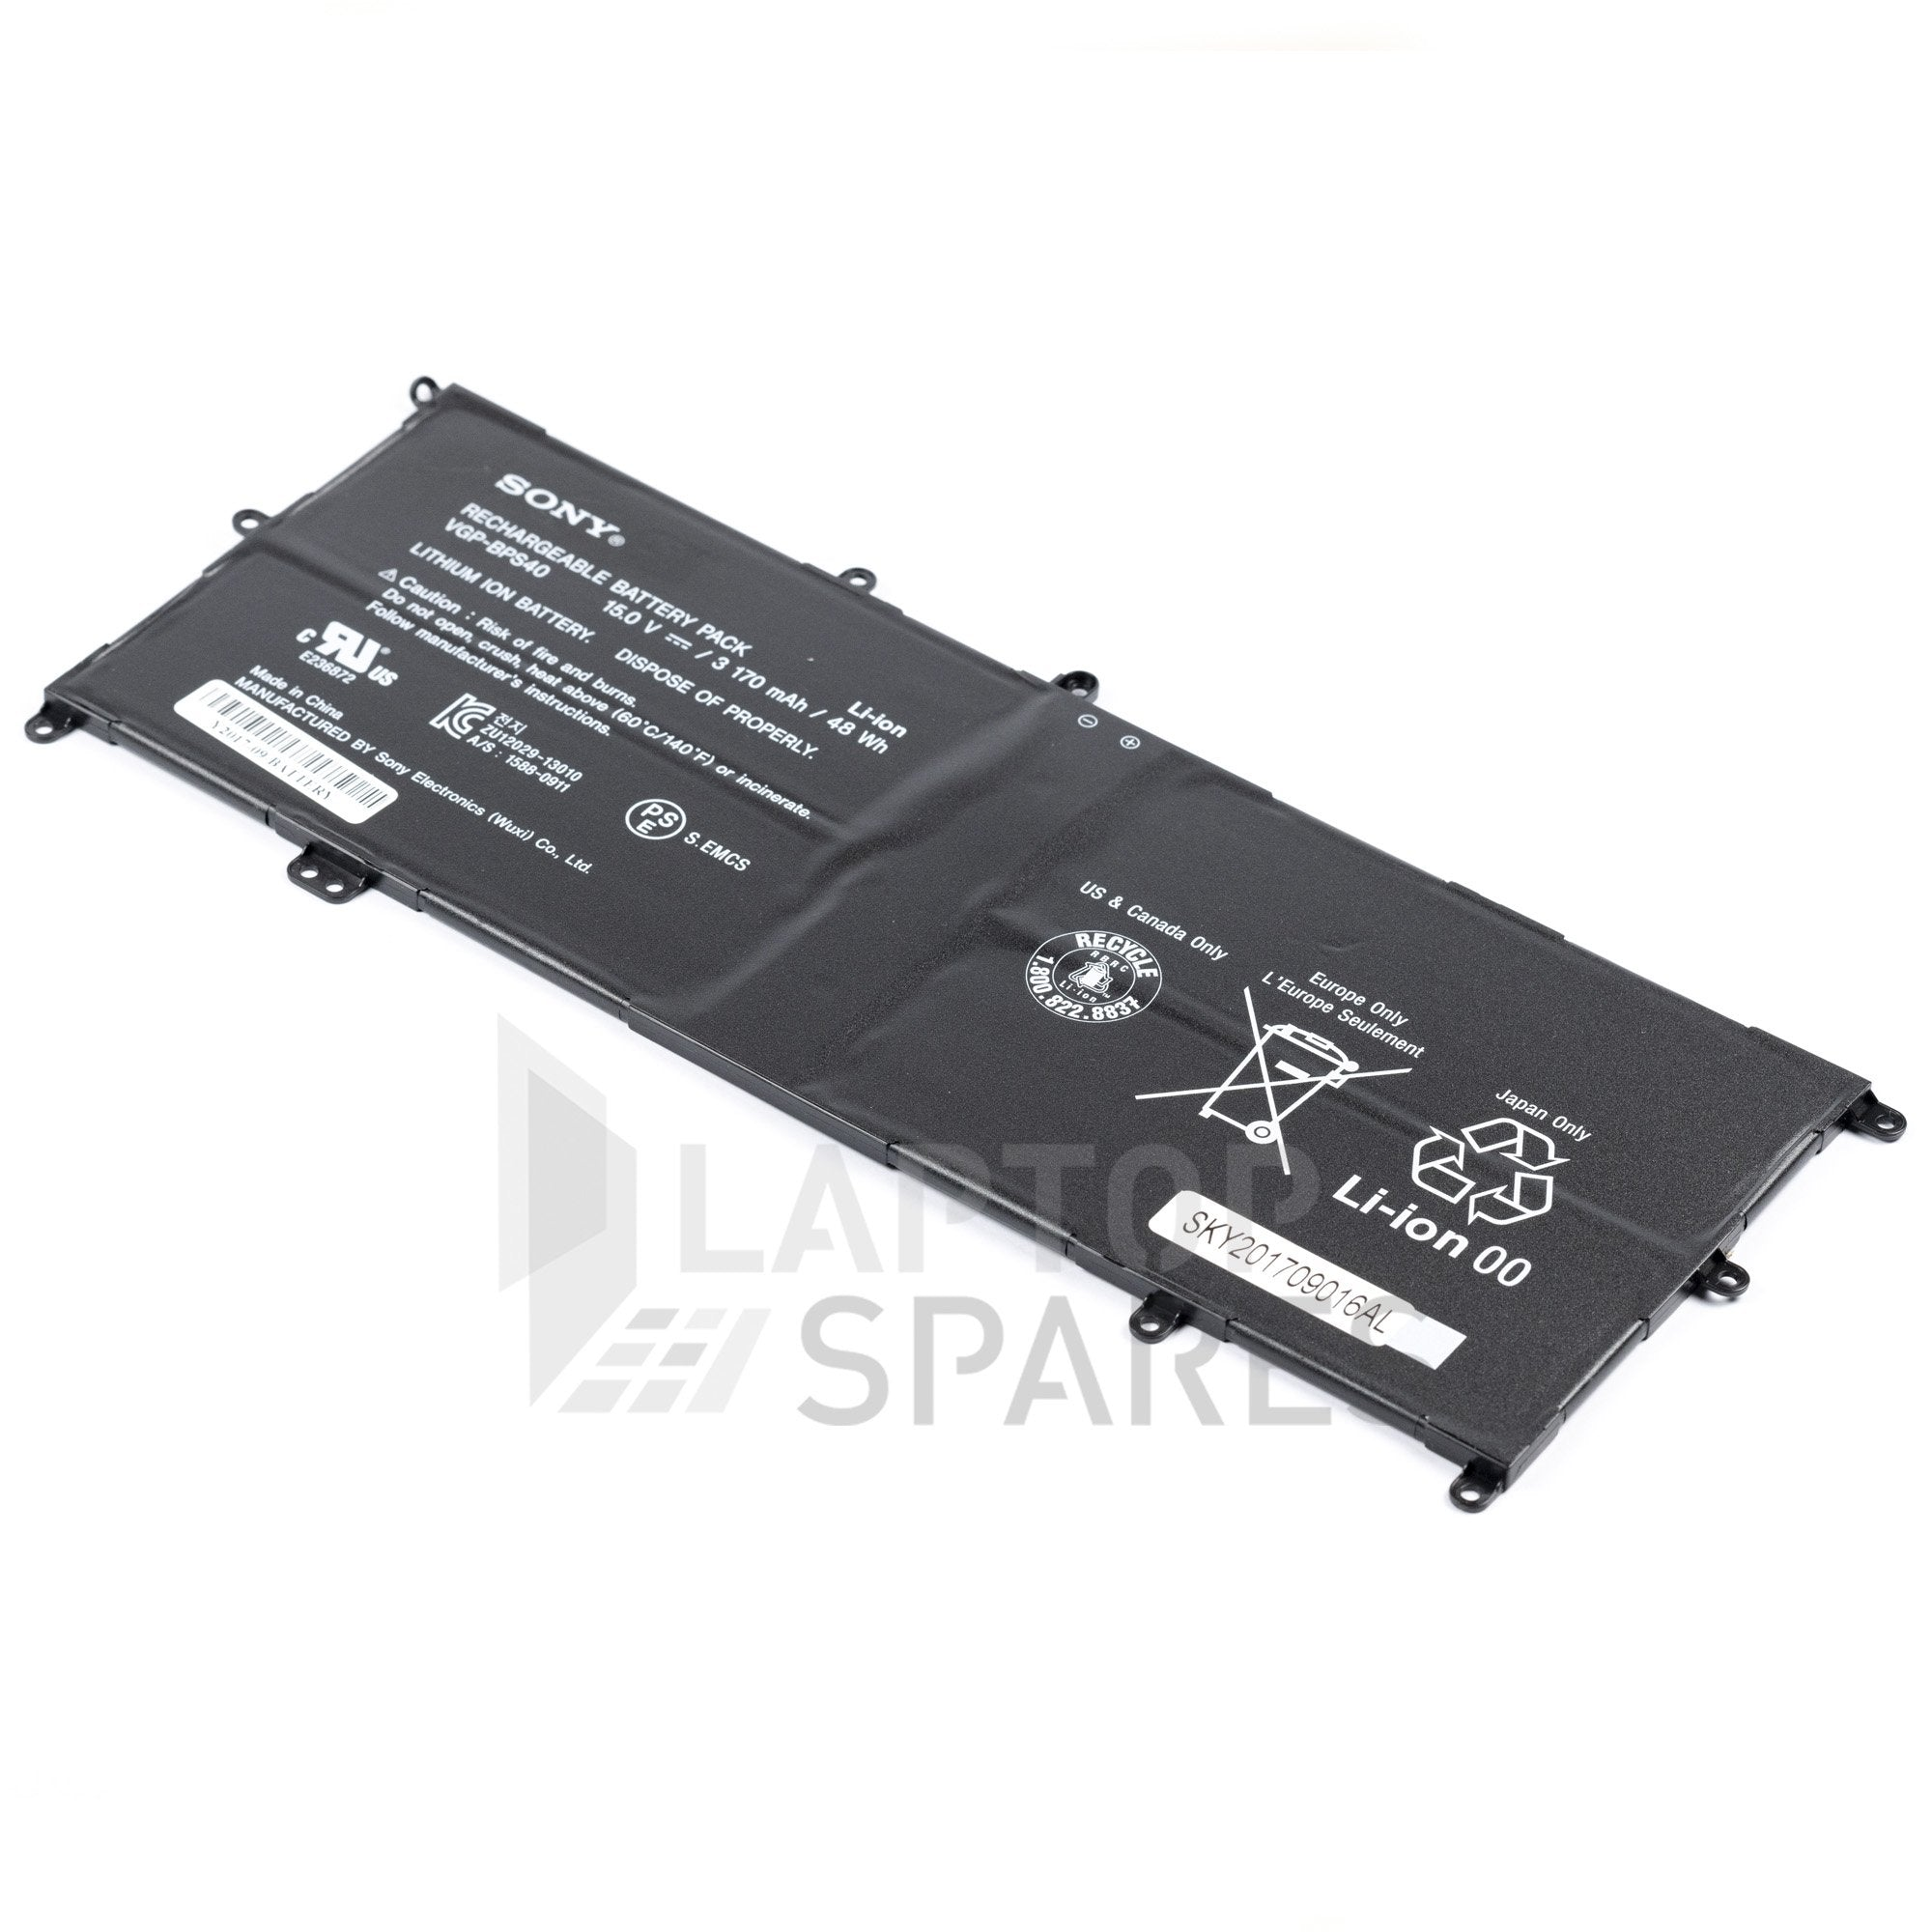 Sony Vaio 14A Vaio 15A 3170mAh Battery